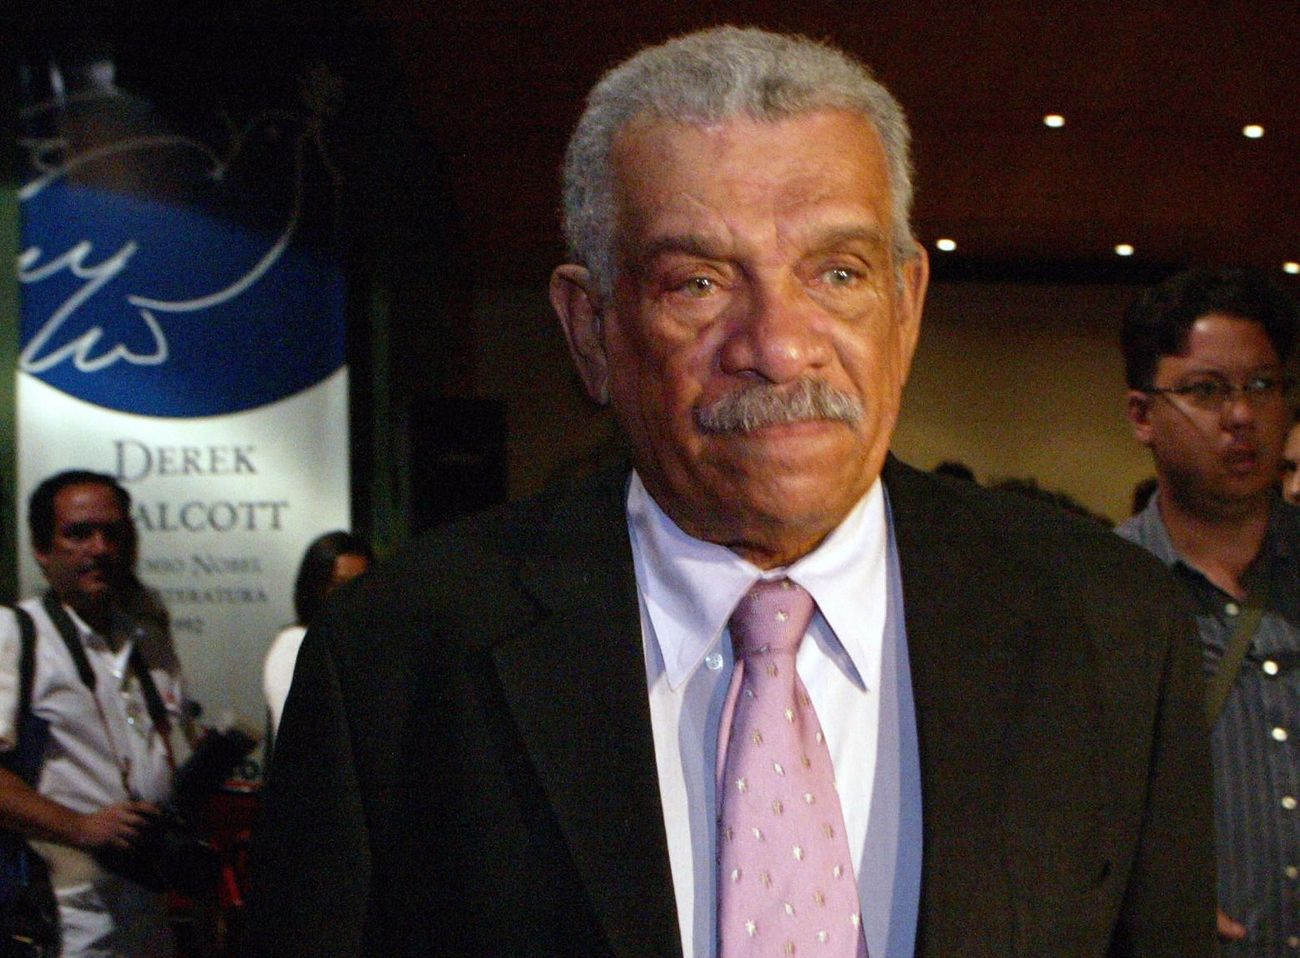 How Nobel Prize-Winning Poet Derek Walcott Identified With The Jews